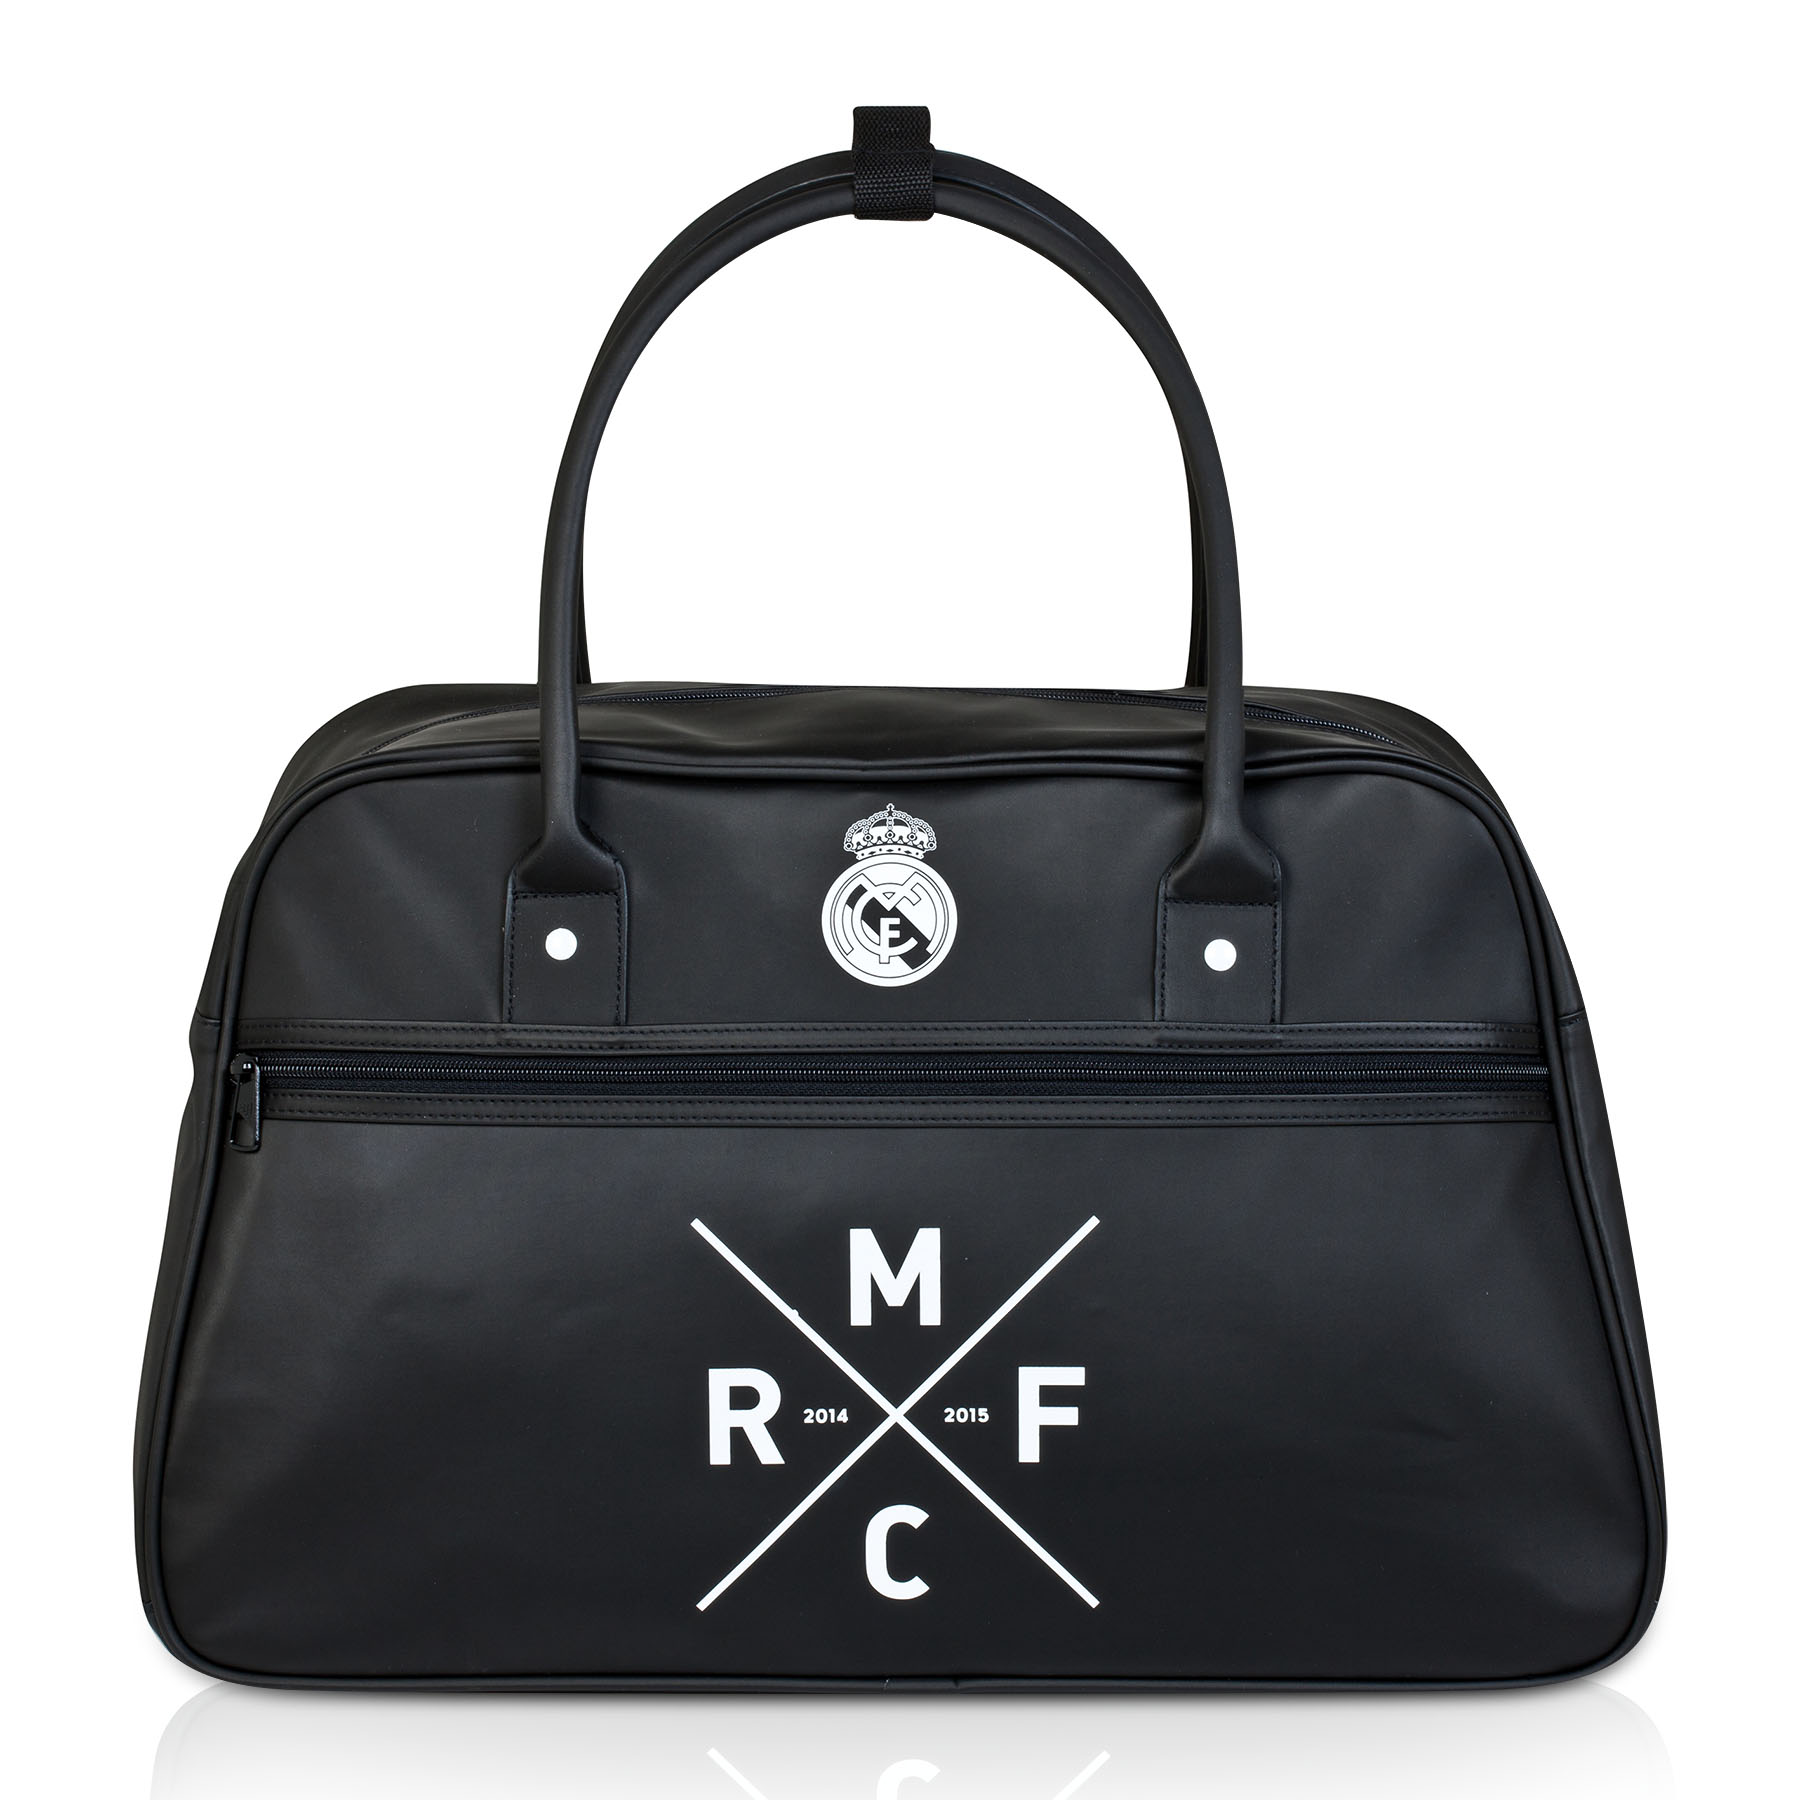 Real Madrid Team Bag